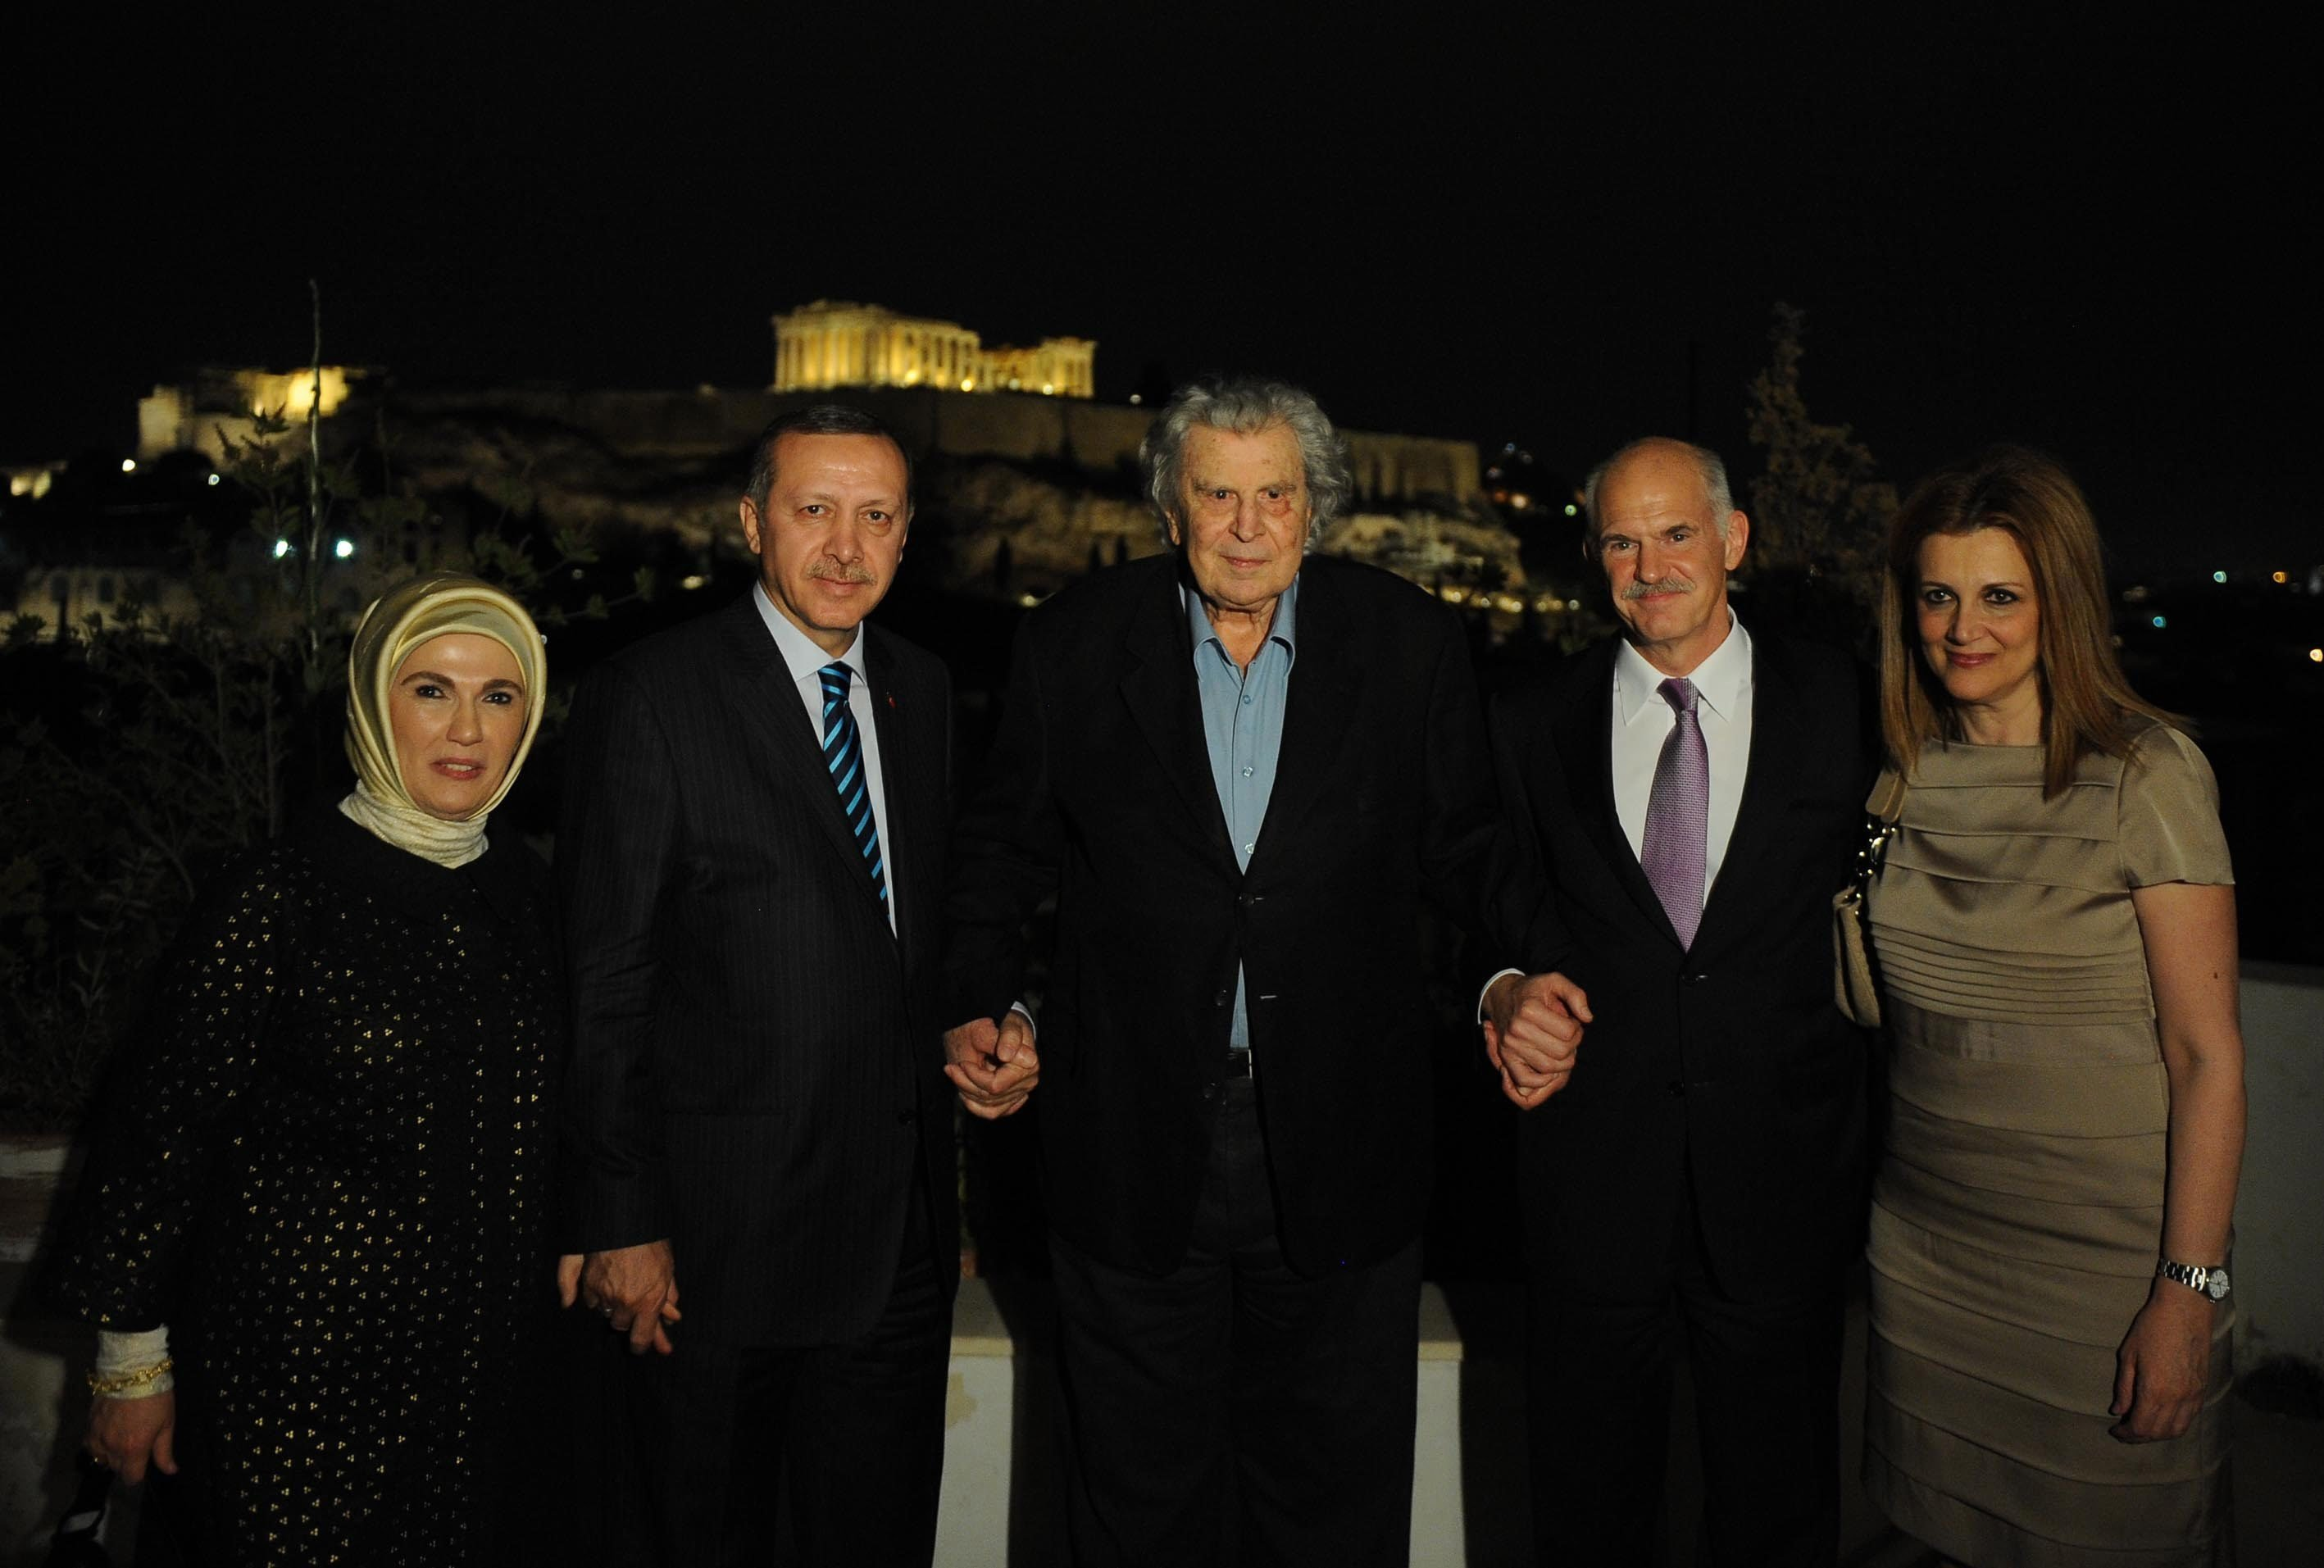 This file photo dated May 15, 2010, shows Mikis Theodorakis (C) welcoming former Greek Prime Minister George Papandreou (2nd R) and then-Turkish Prime Minister Recep Tayyip Erdoğan (2nd L) to his Athens home along with their wives during the latter's visit to Greece. (AA Photo)